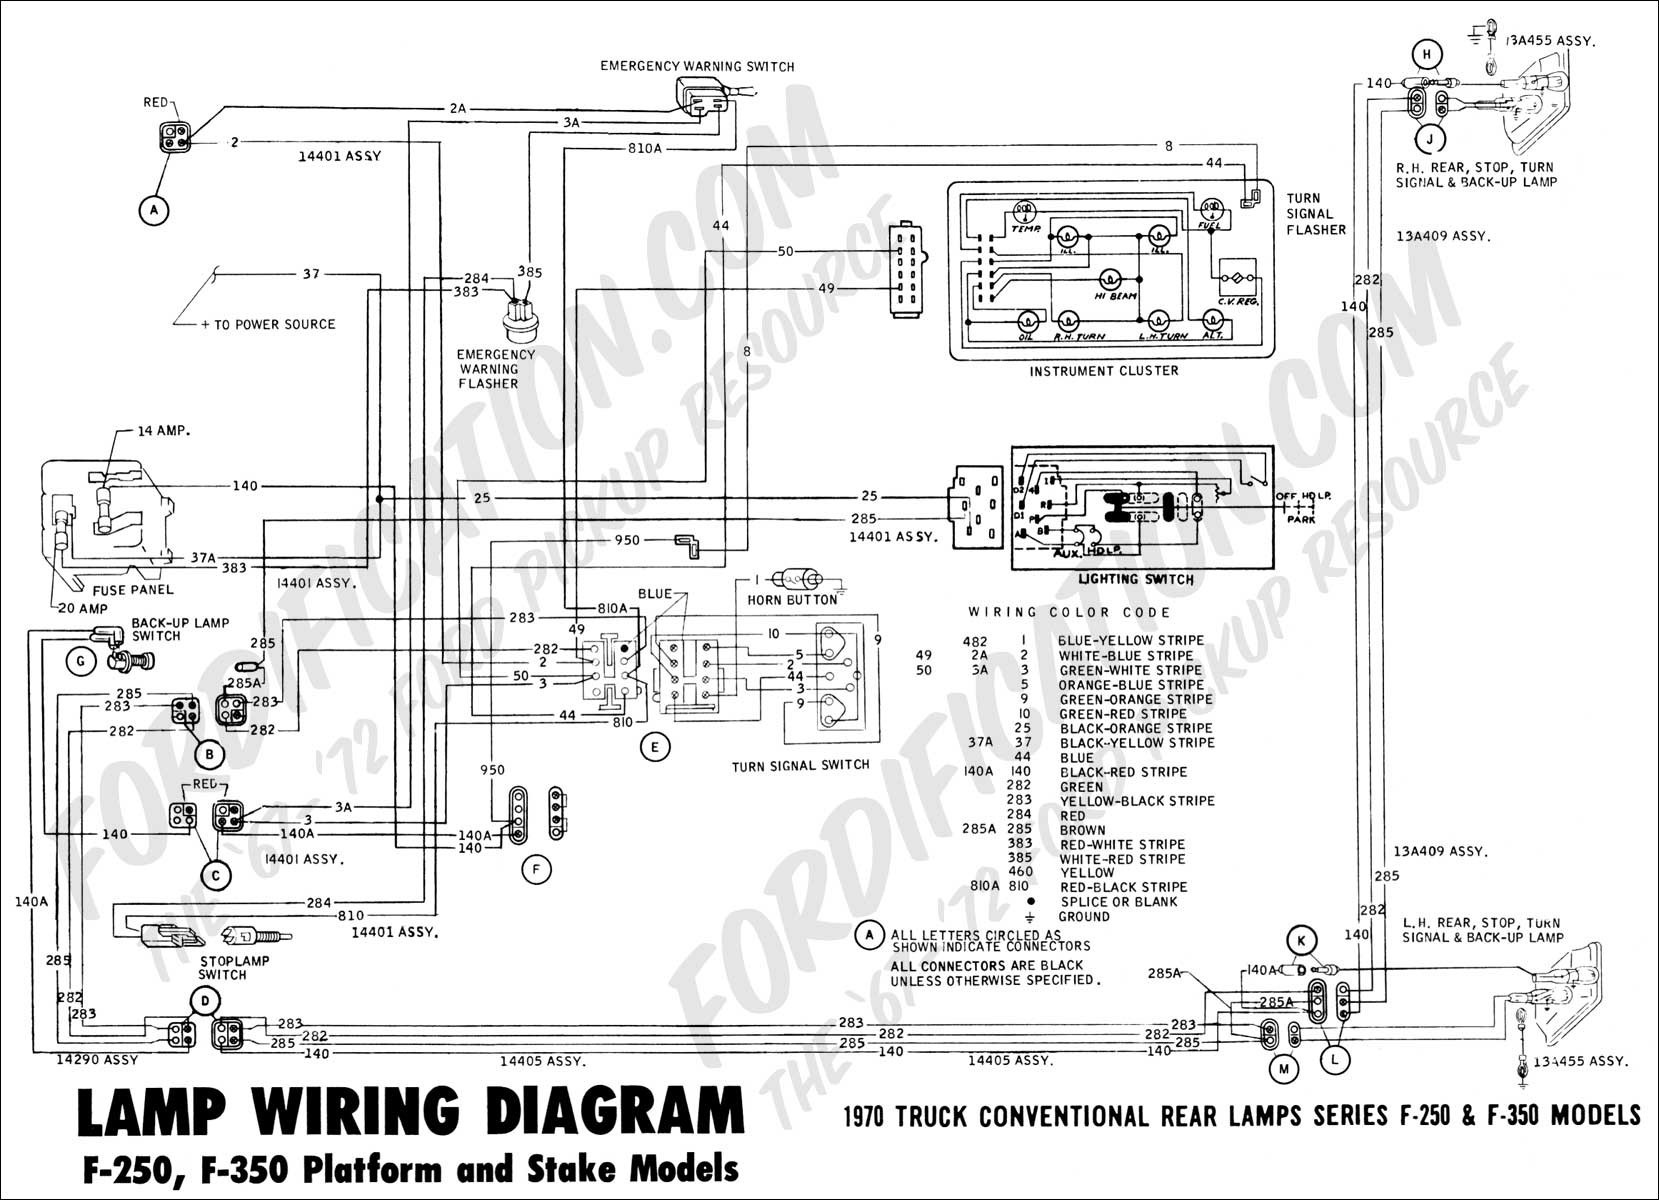 1979 Ford F 150 Light Wiring Diagram Library Of Diagrams 1980 Alternator 1977 Truck Tail Search For U2022 Rh Idijournal Com 1973